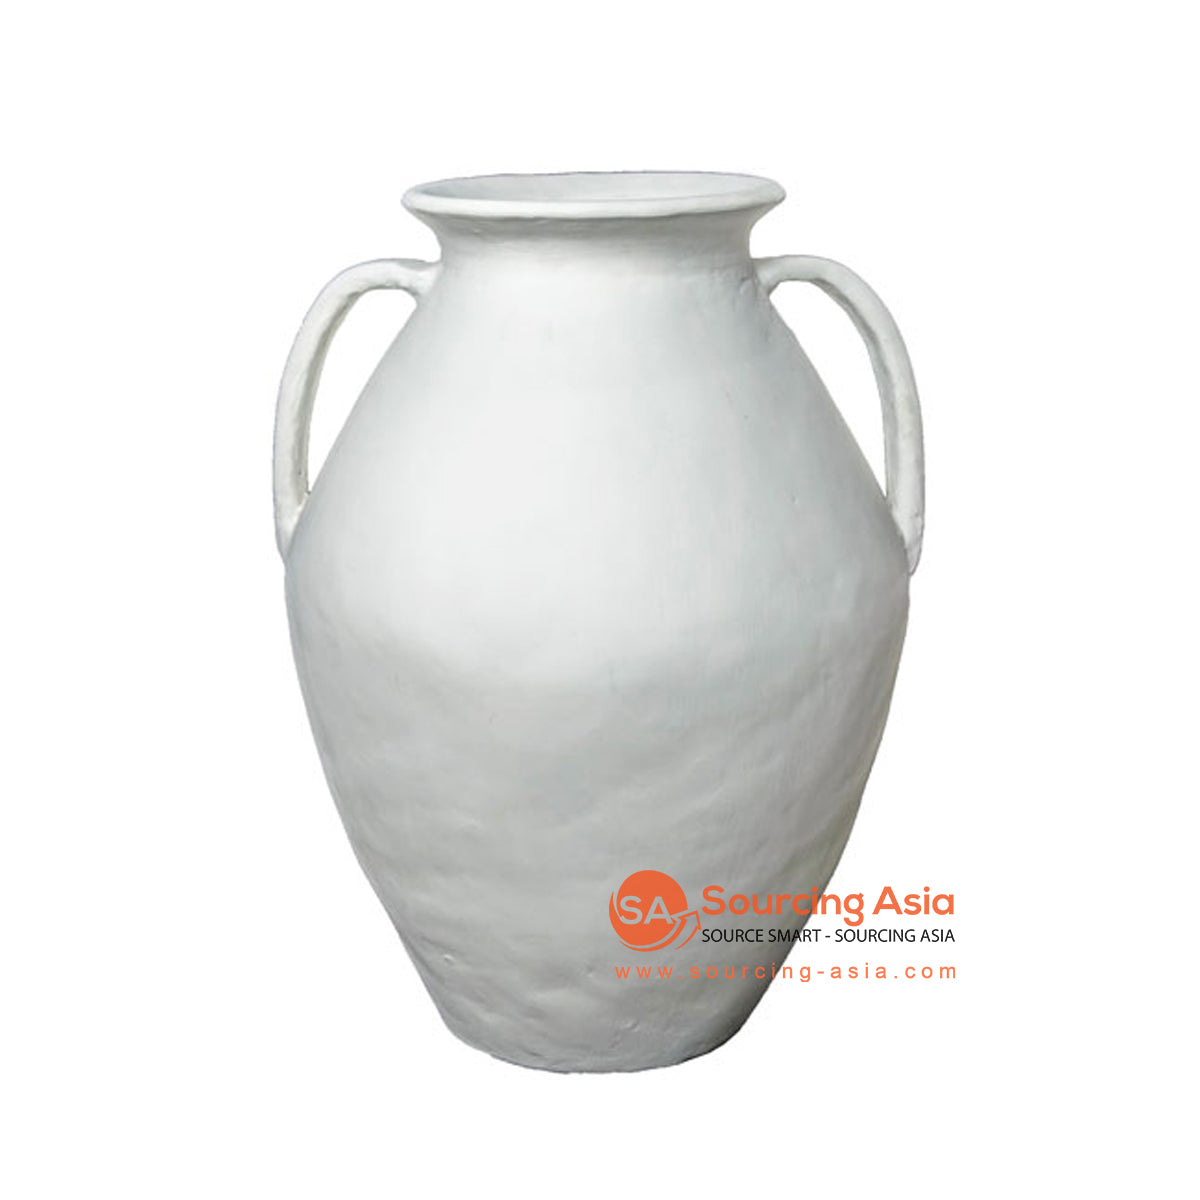 SHL207-8 WHITE TERRACOTTA VASE WITH HANDLE